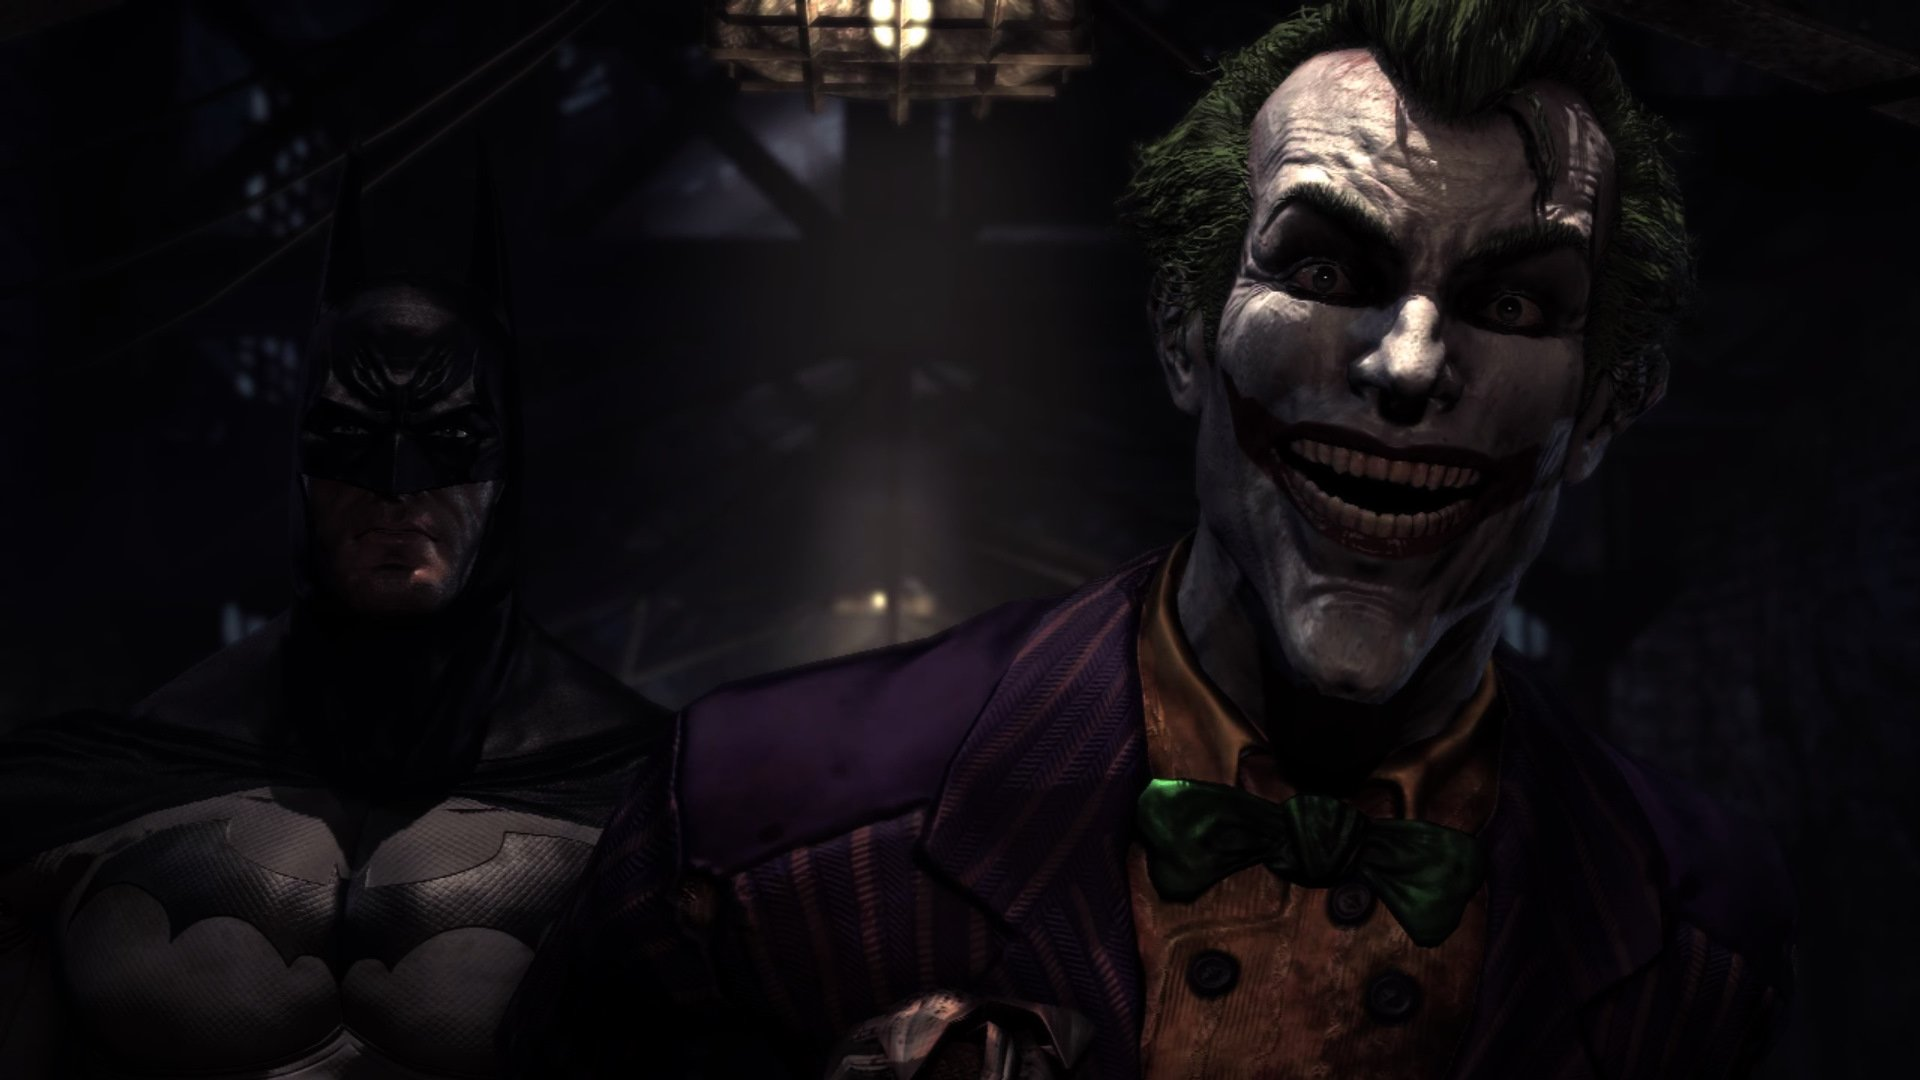 Joker and Batman Wallpaper Joshhome 1920x1080